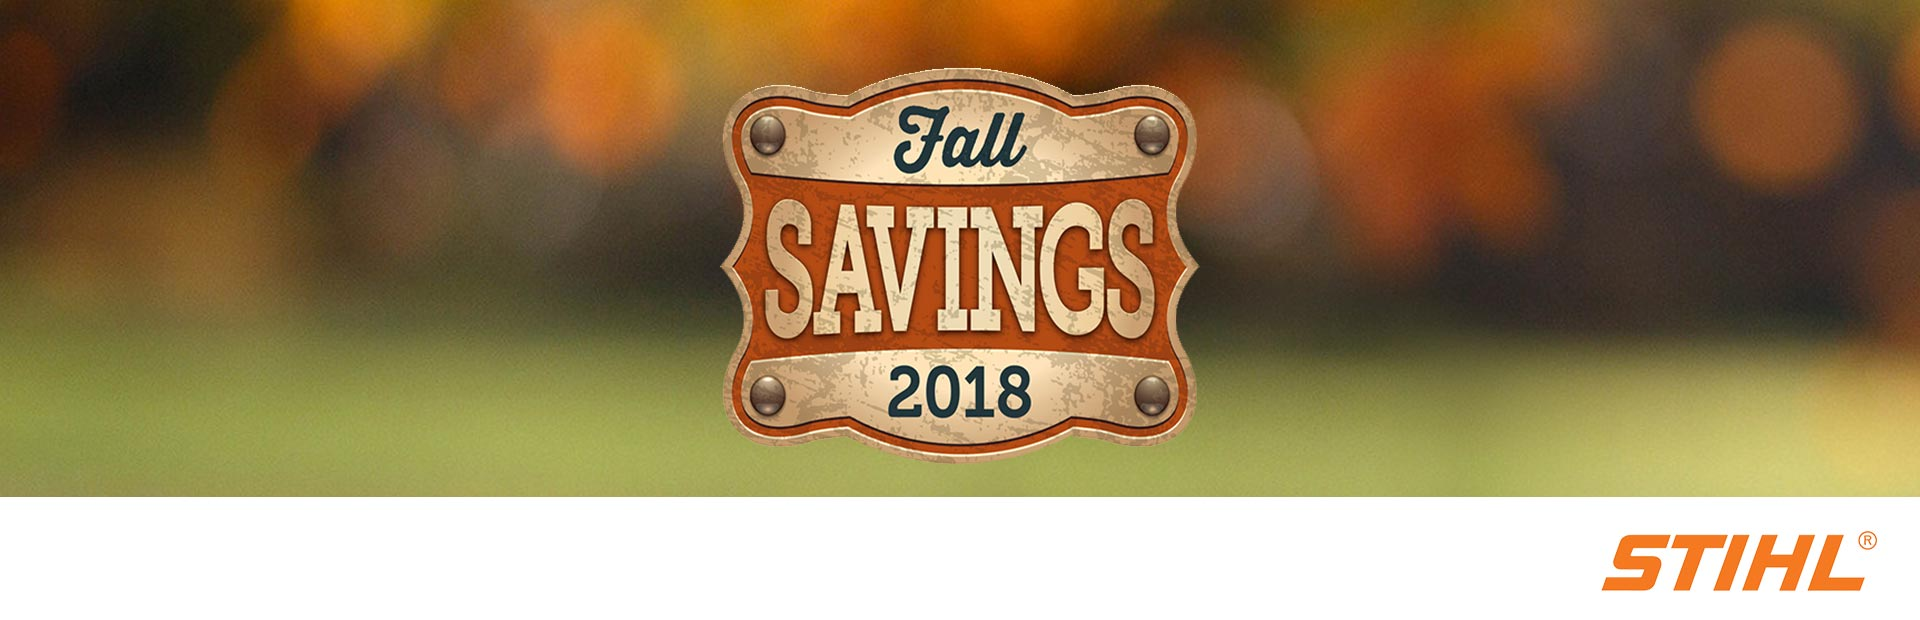 STIHL: STIHL Fall Savings 2018